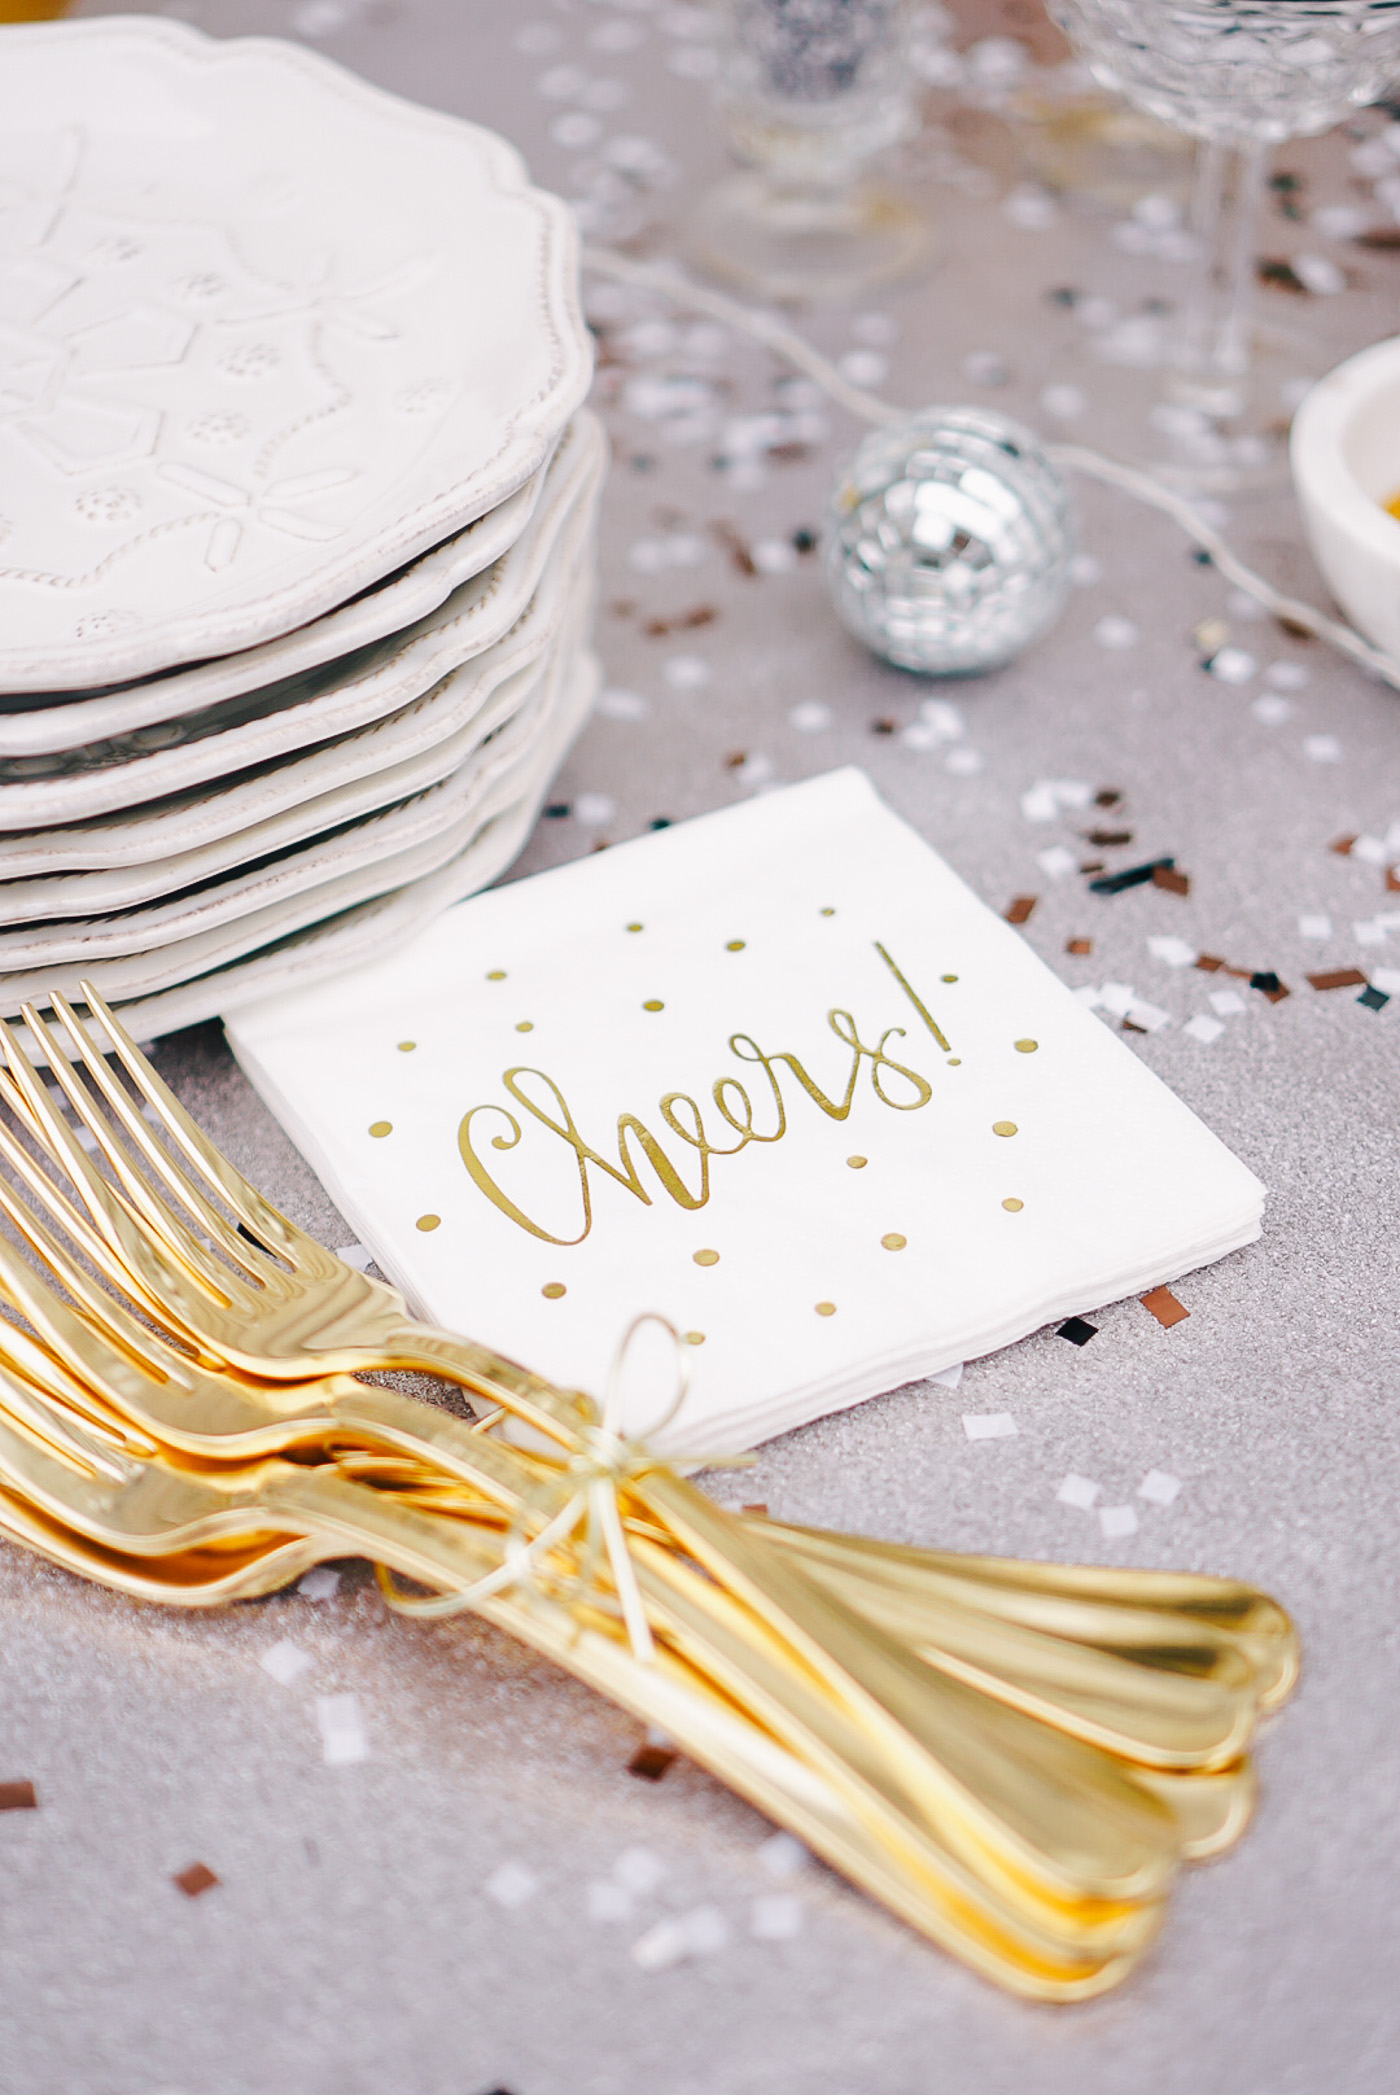 The perfect New Year's cupcake bar party by Lauren Cermak of the Southern lifestyle blog, Going For Grace. What better way to ring in the new year?!